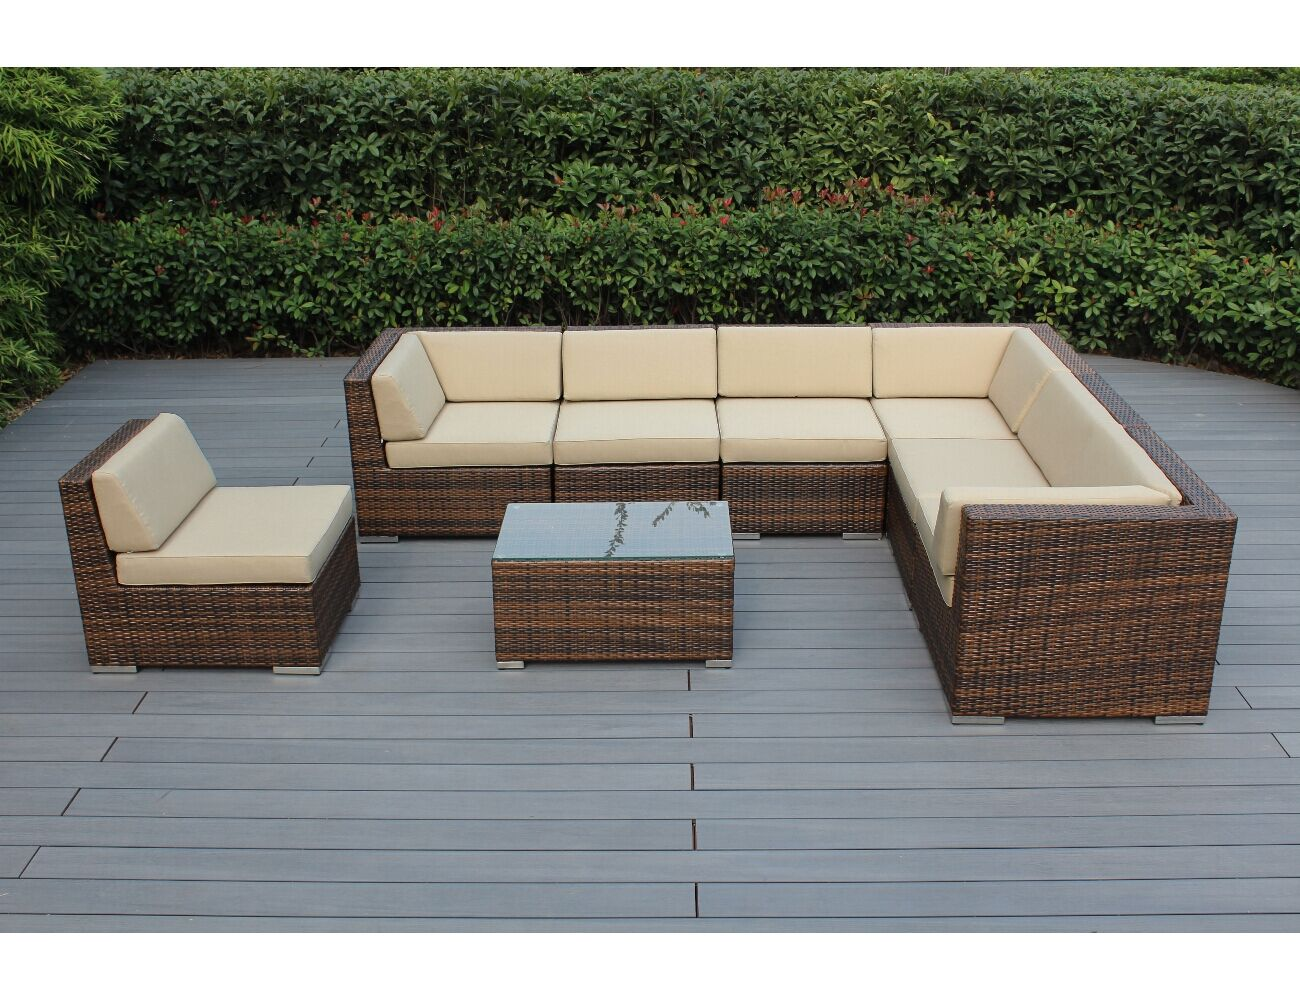 Baril 8 Piece Rattan Sunbrella Sectional Set with Sunbrella Cushions Frame Color: Mixed Brown, Fabric: Taupe